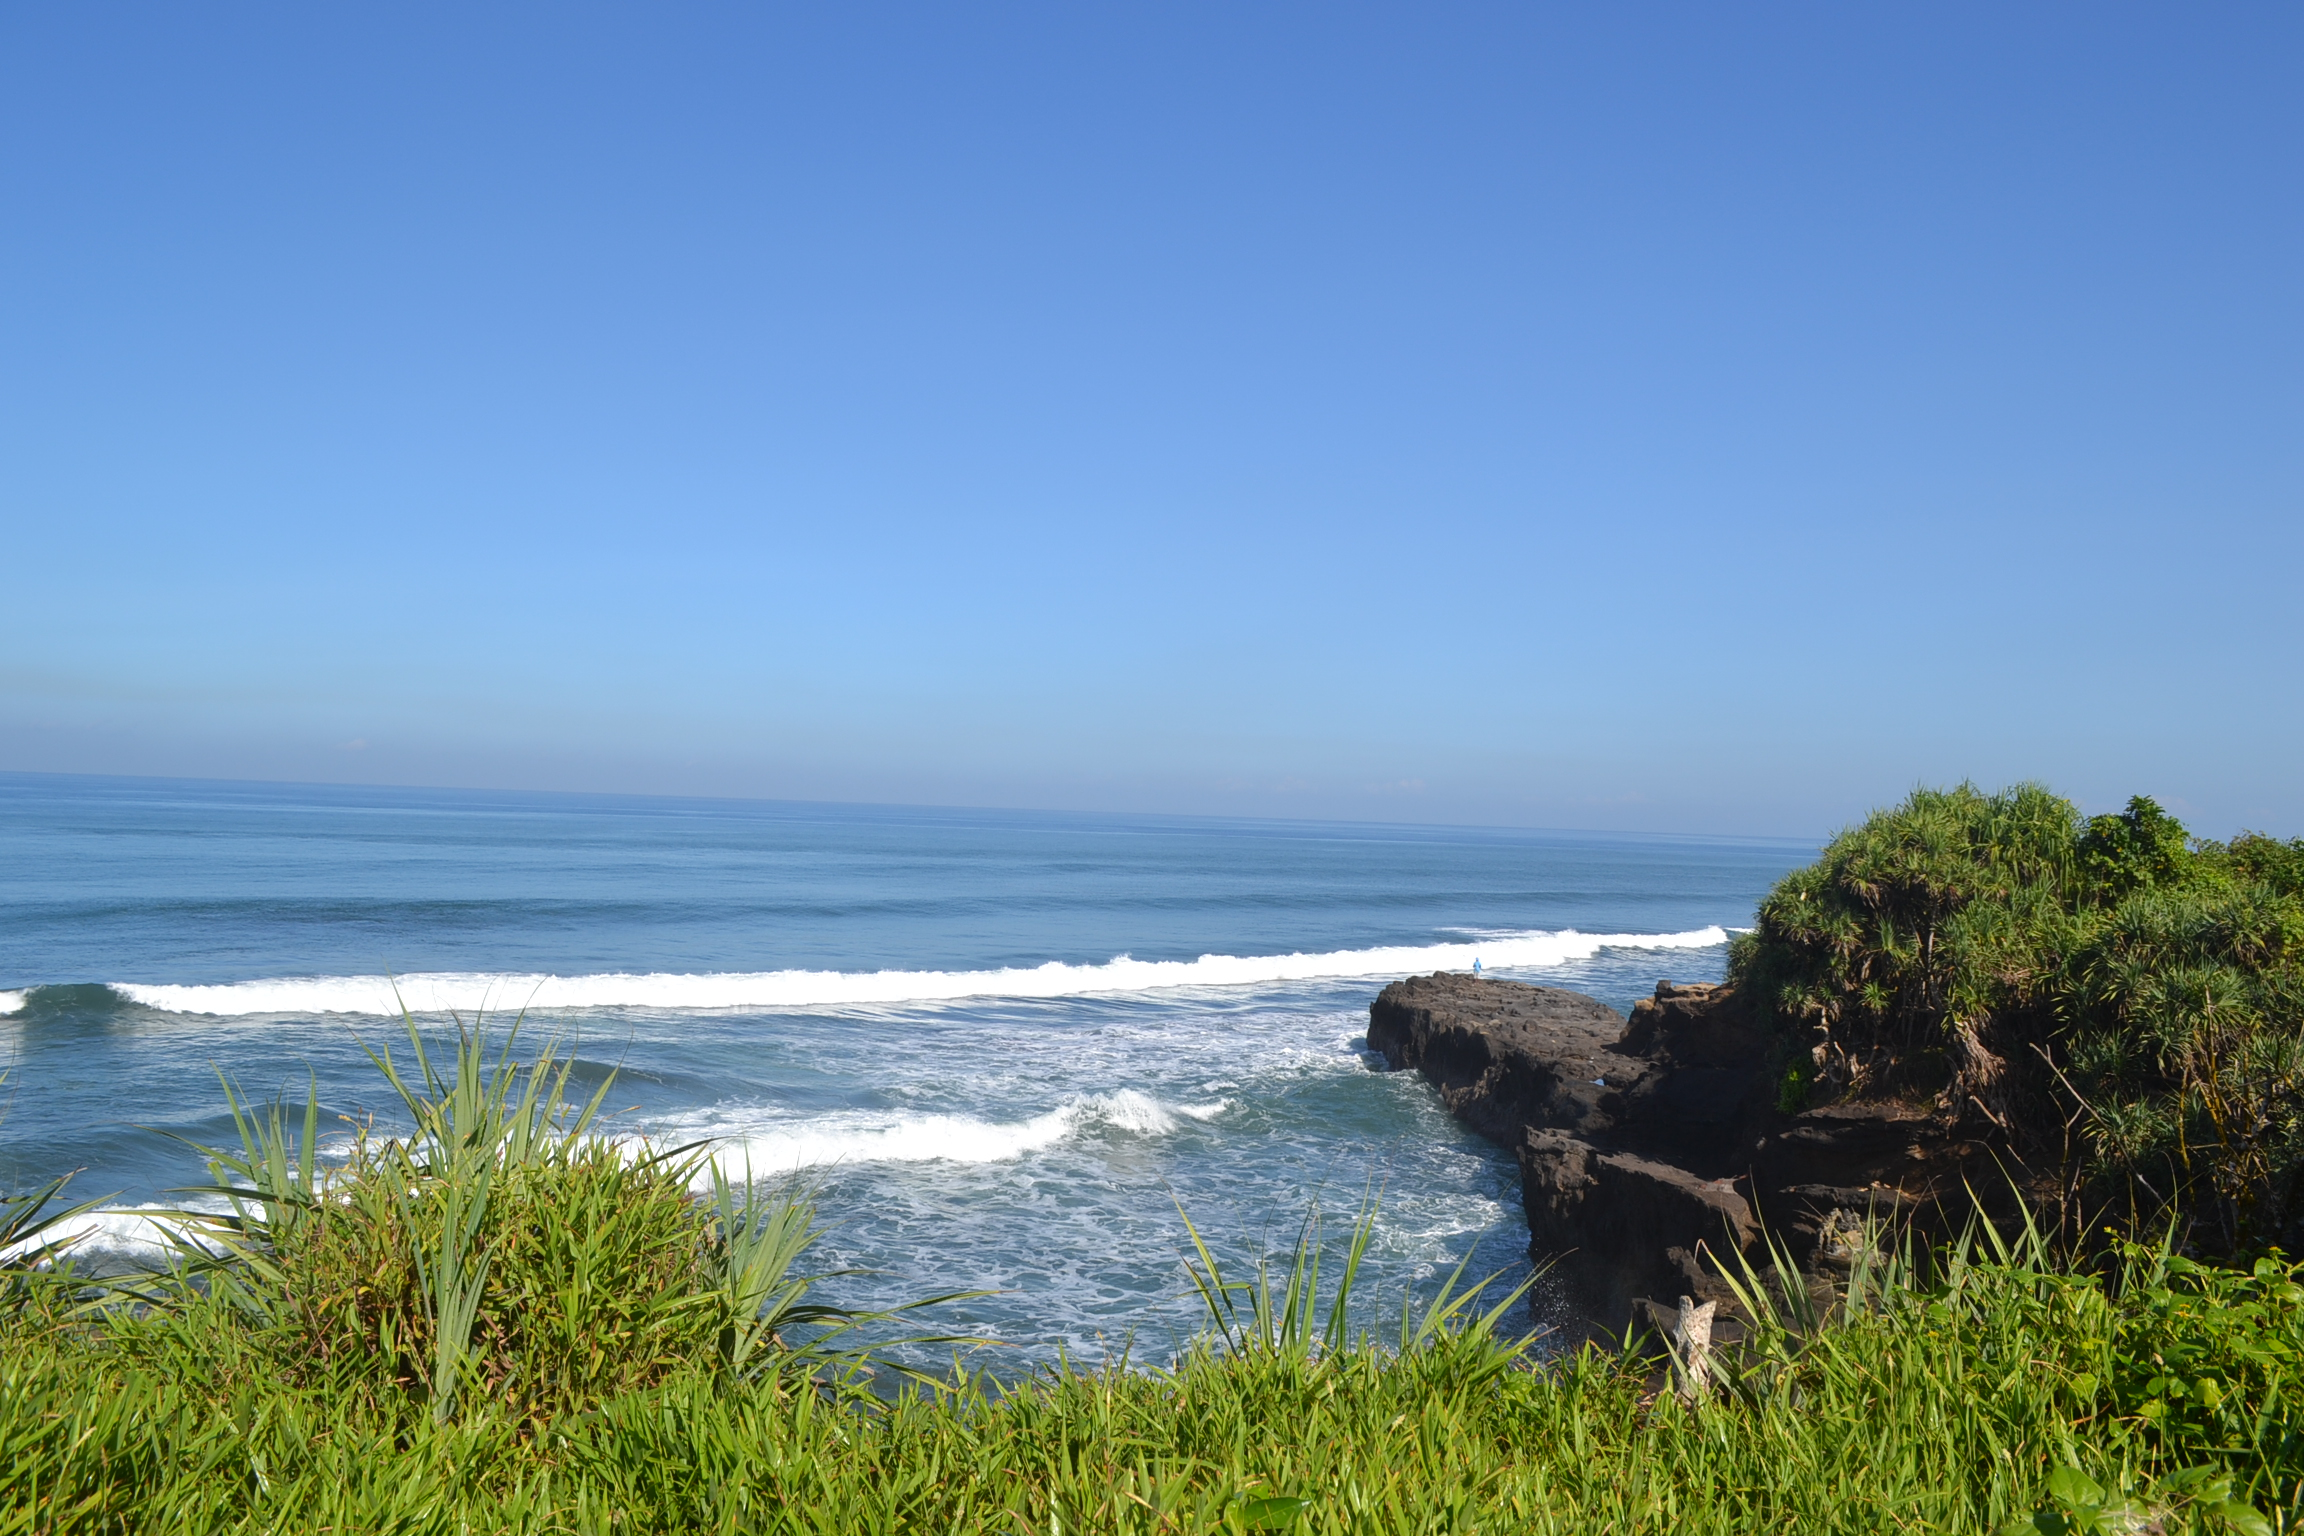 Bali Coast | Backpacking Europe Blog